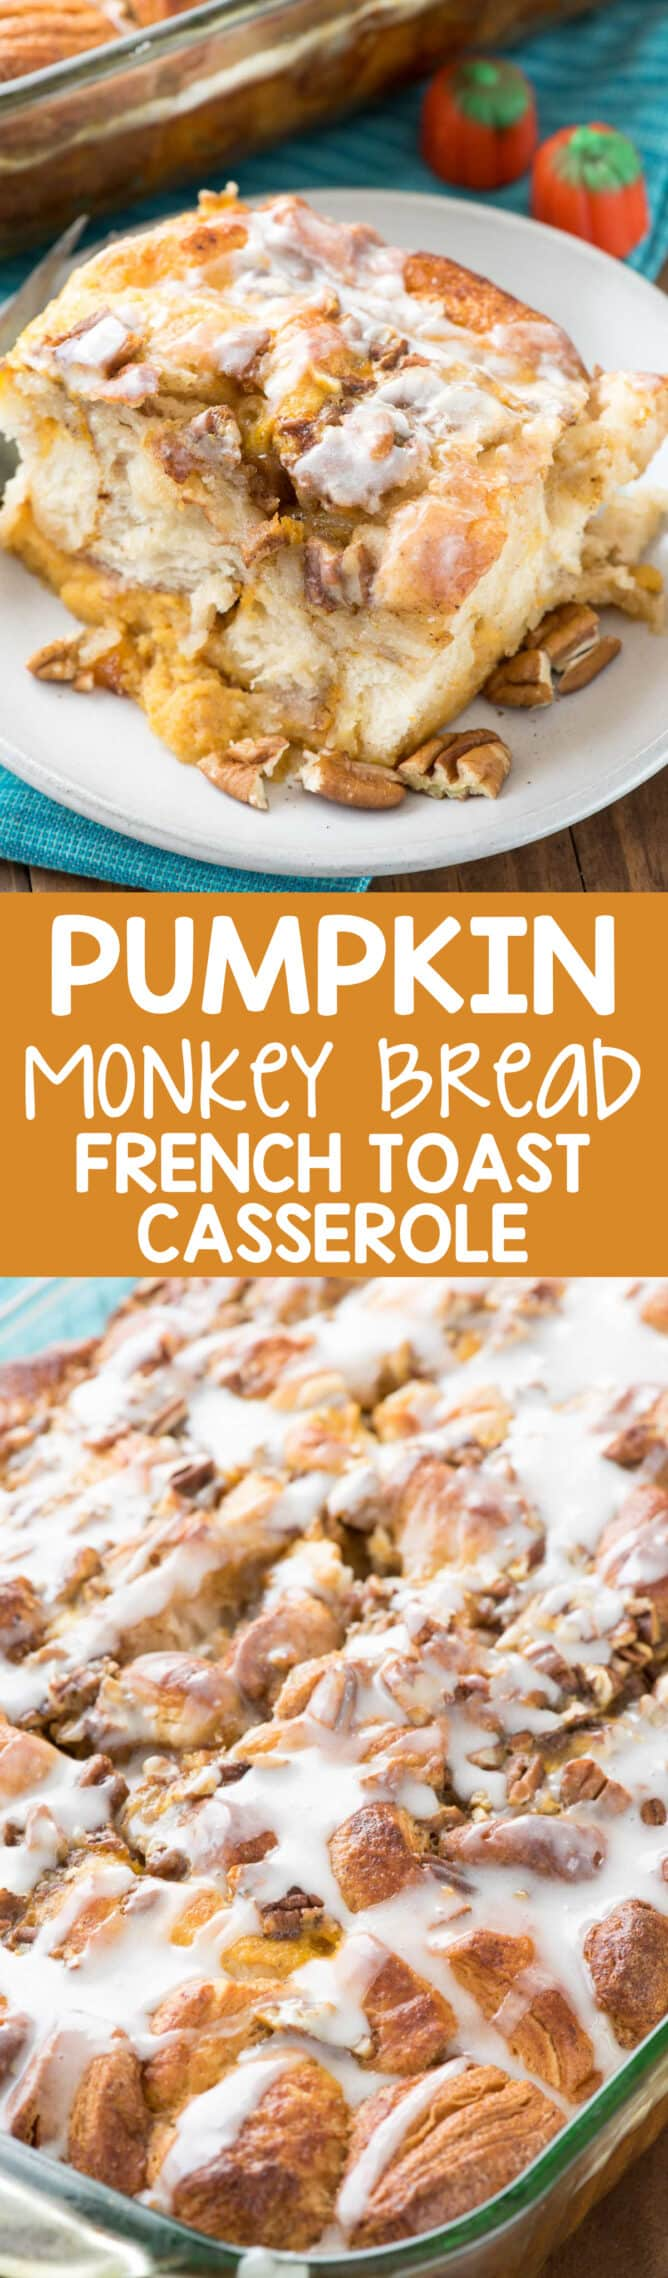 Pumpkin Monkey Bread French Toast Casserole collage of two photos